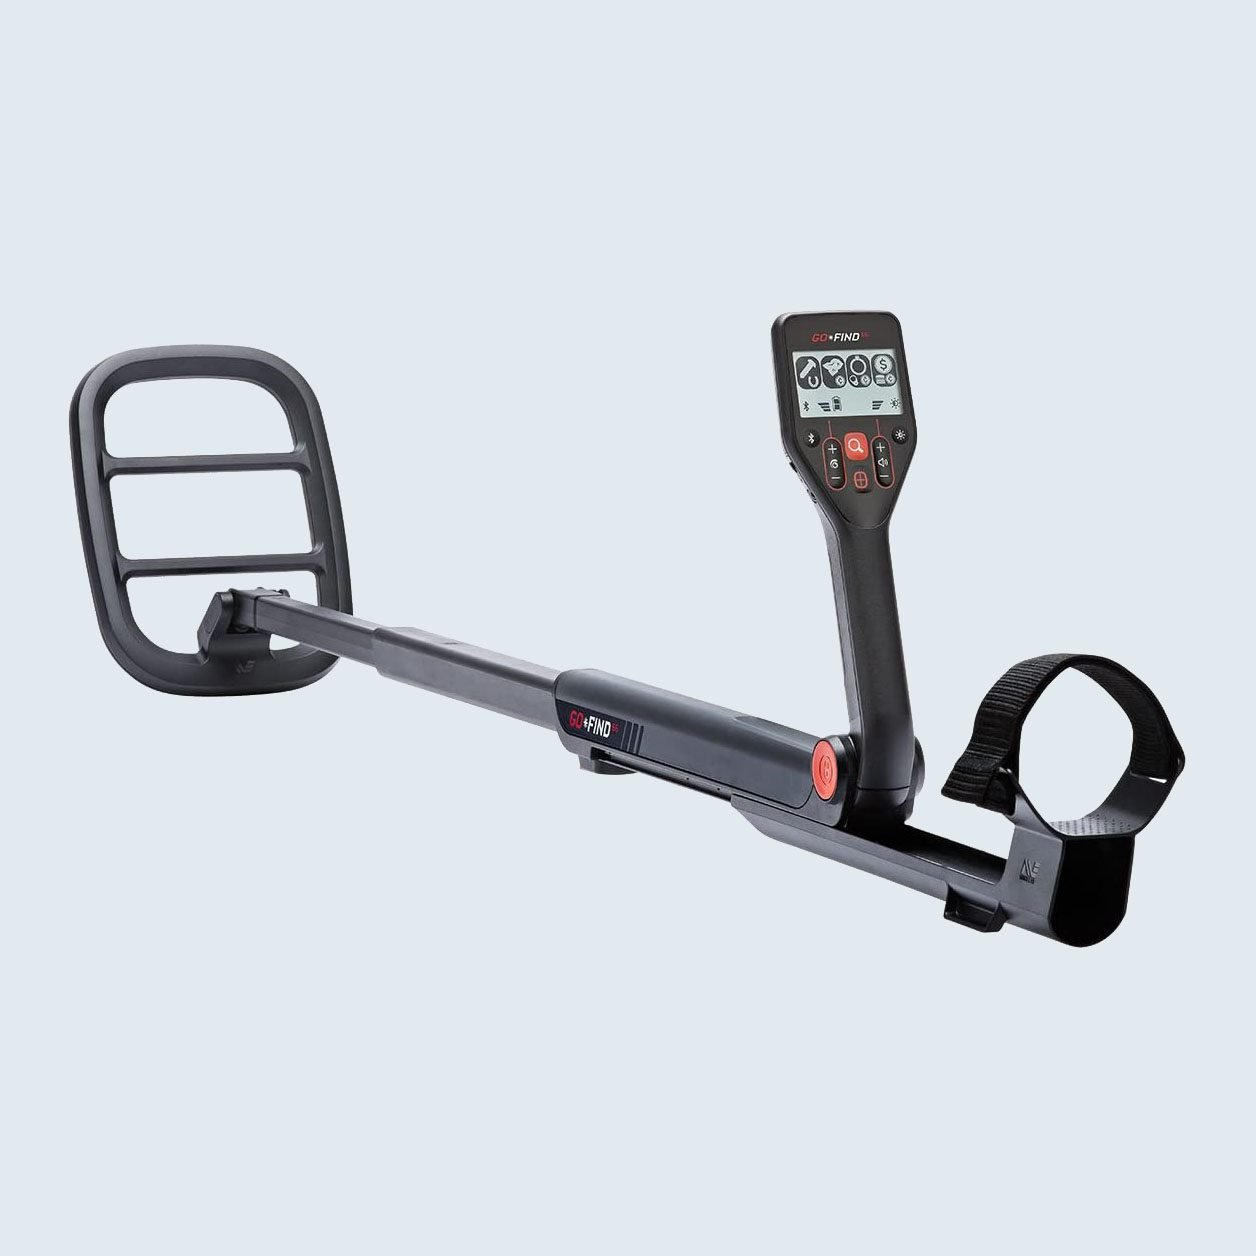 Minelab GO-FIND 66 Metal Detector with Carry Bag